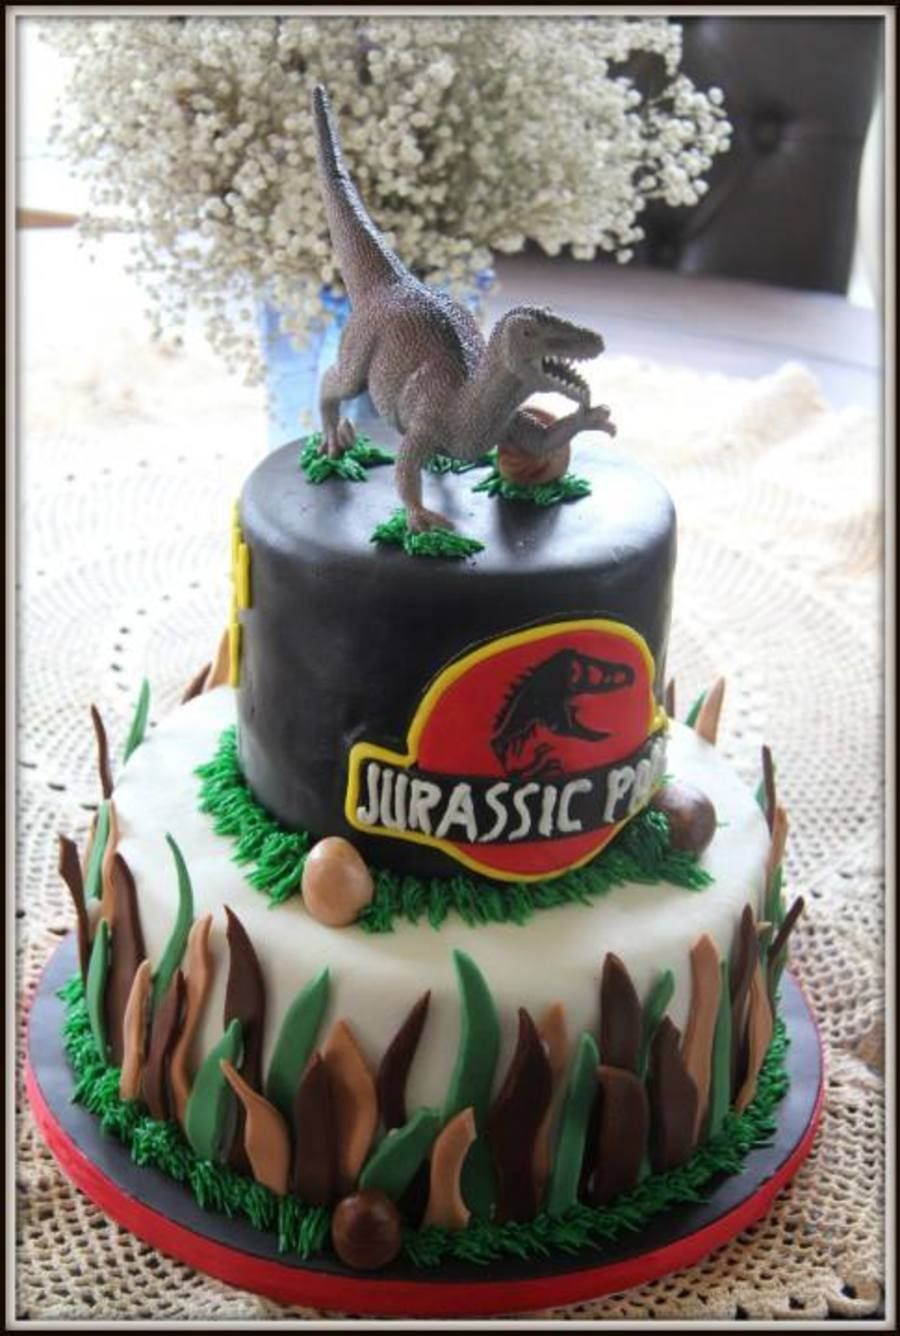 Jurassic Park With Images Dinosaur Birthday Cakes Jurassic